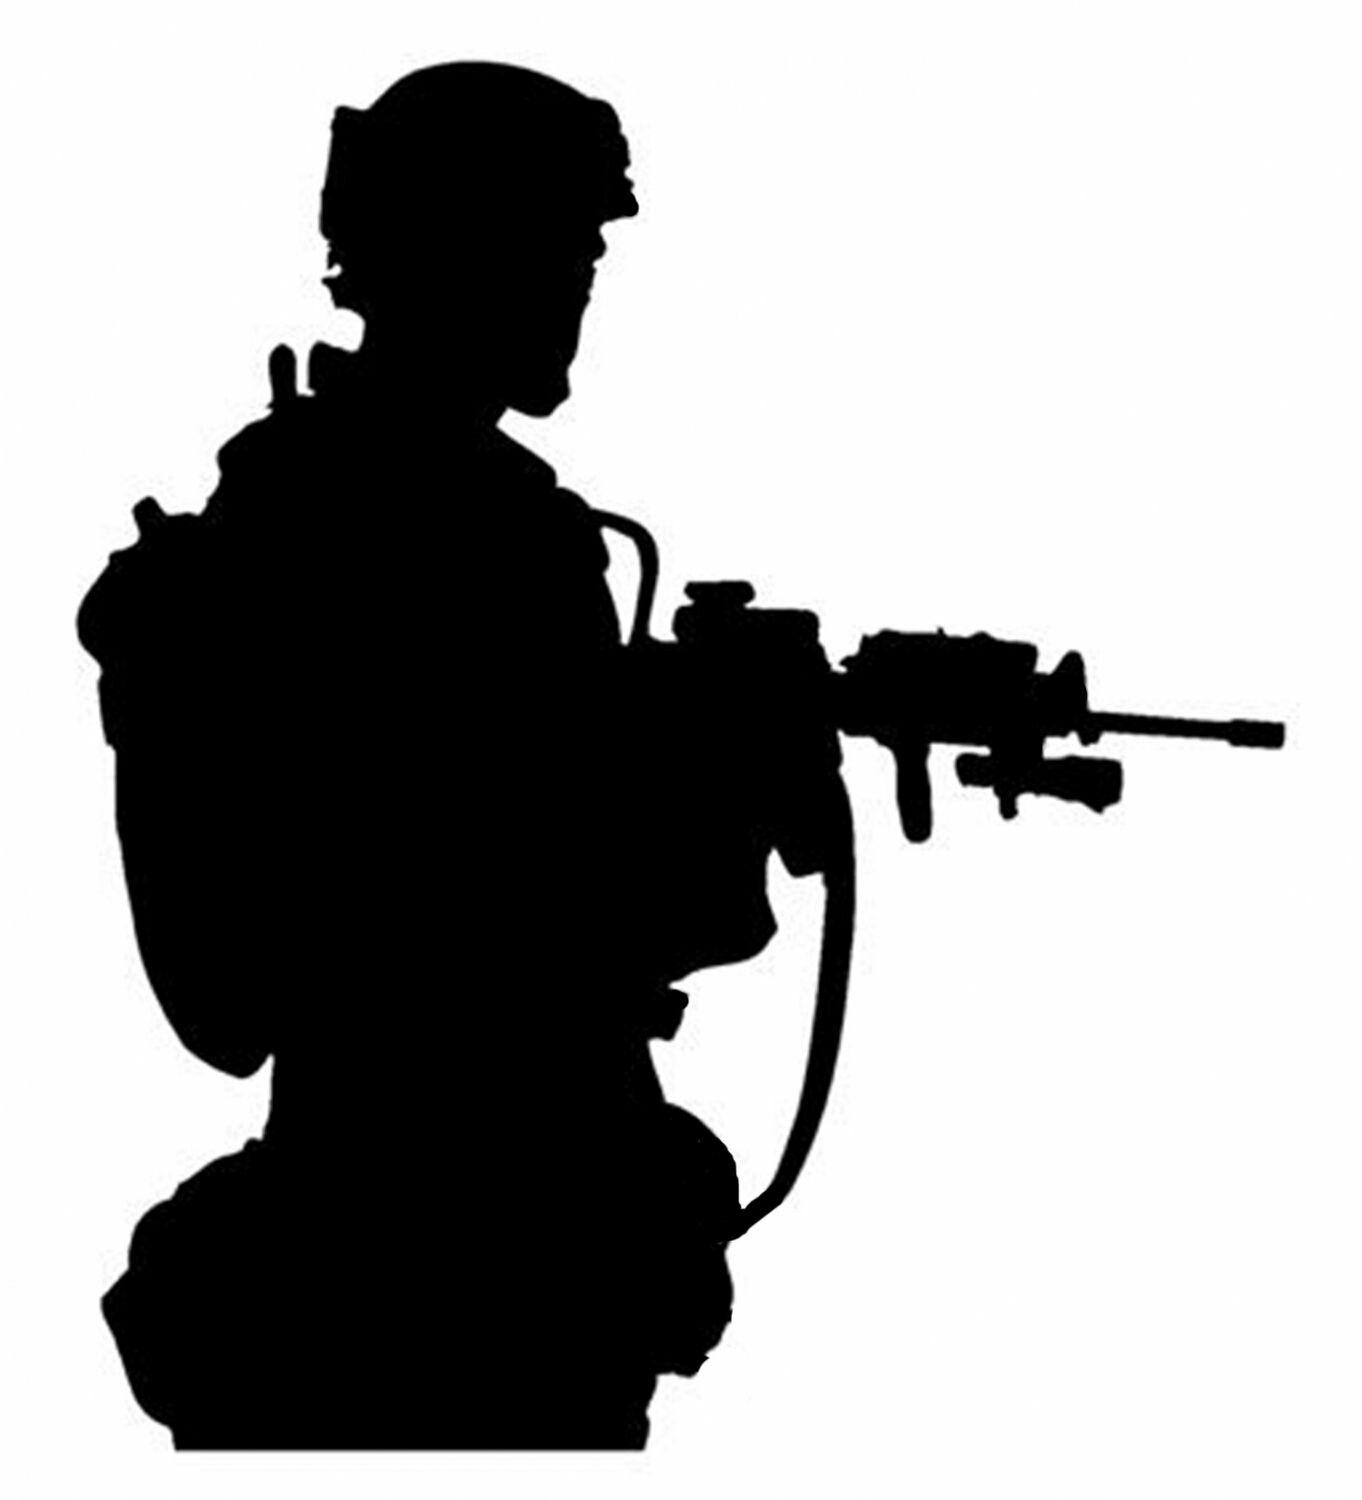 Pin By Eric West On Printables Soldier Silhouette Silhouette Vinyl Silhouette Art [ 1500 x 1362 Pixel ]